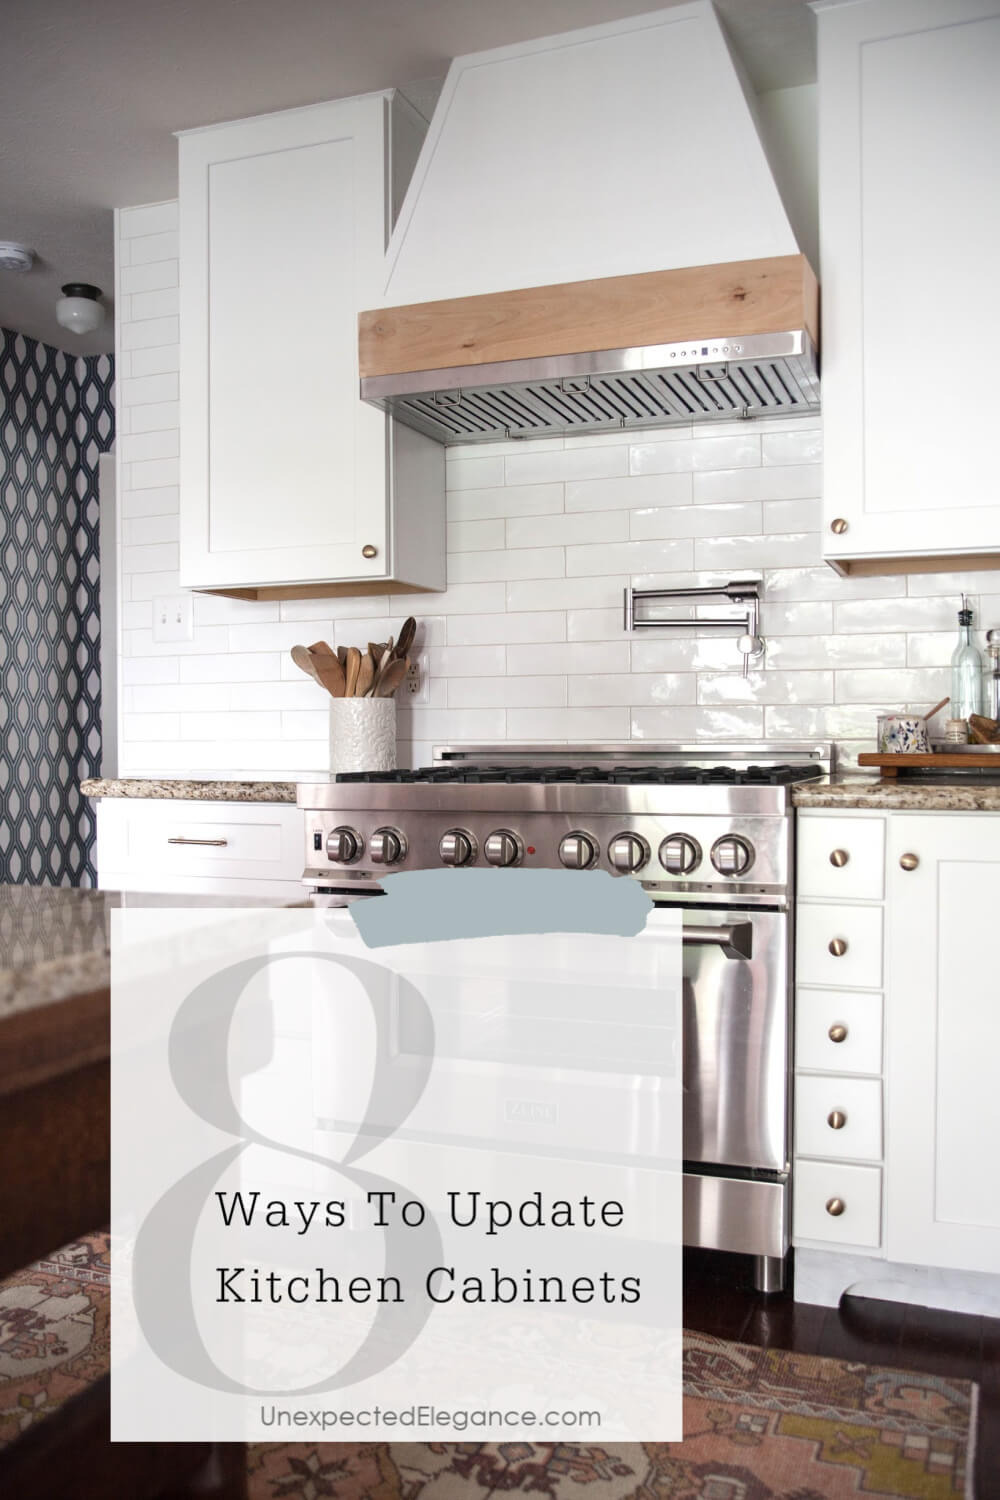 Changing Cabinet Doors Inspirational 8 Ways to Update Kitchen Cabinets